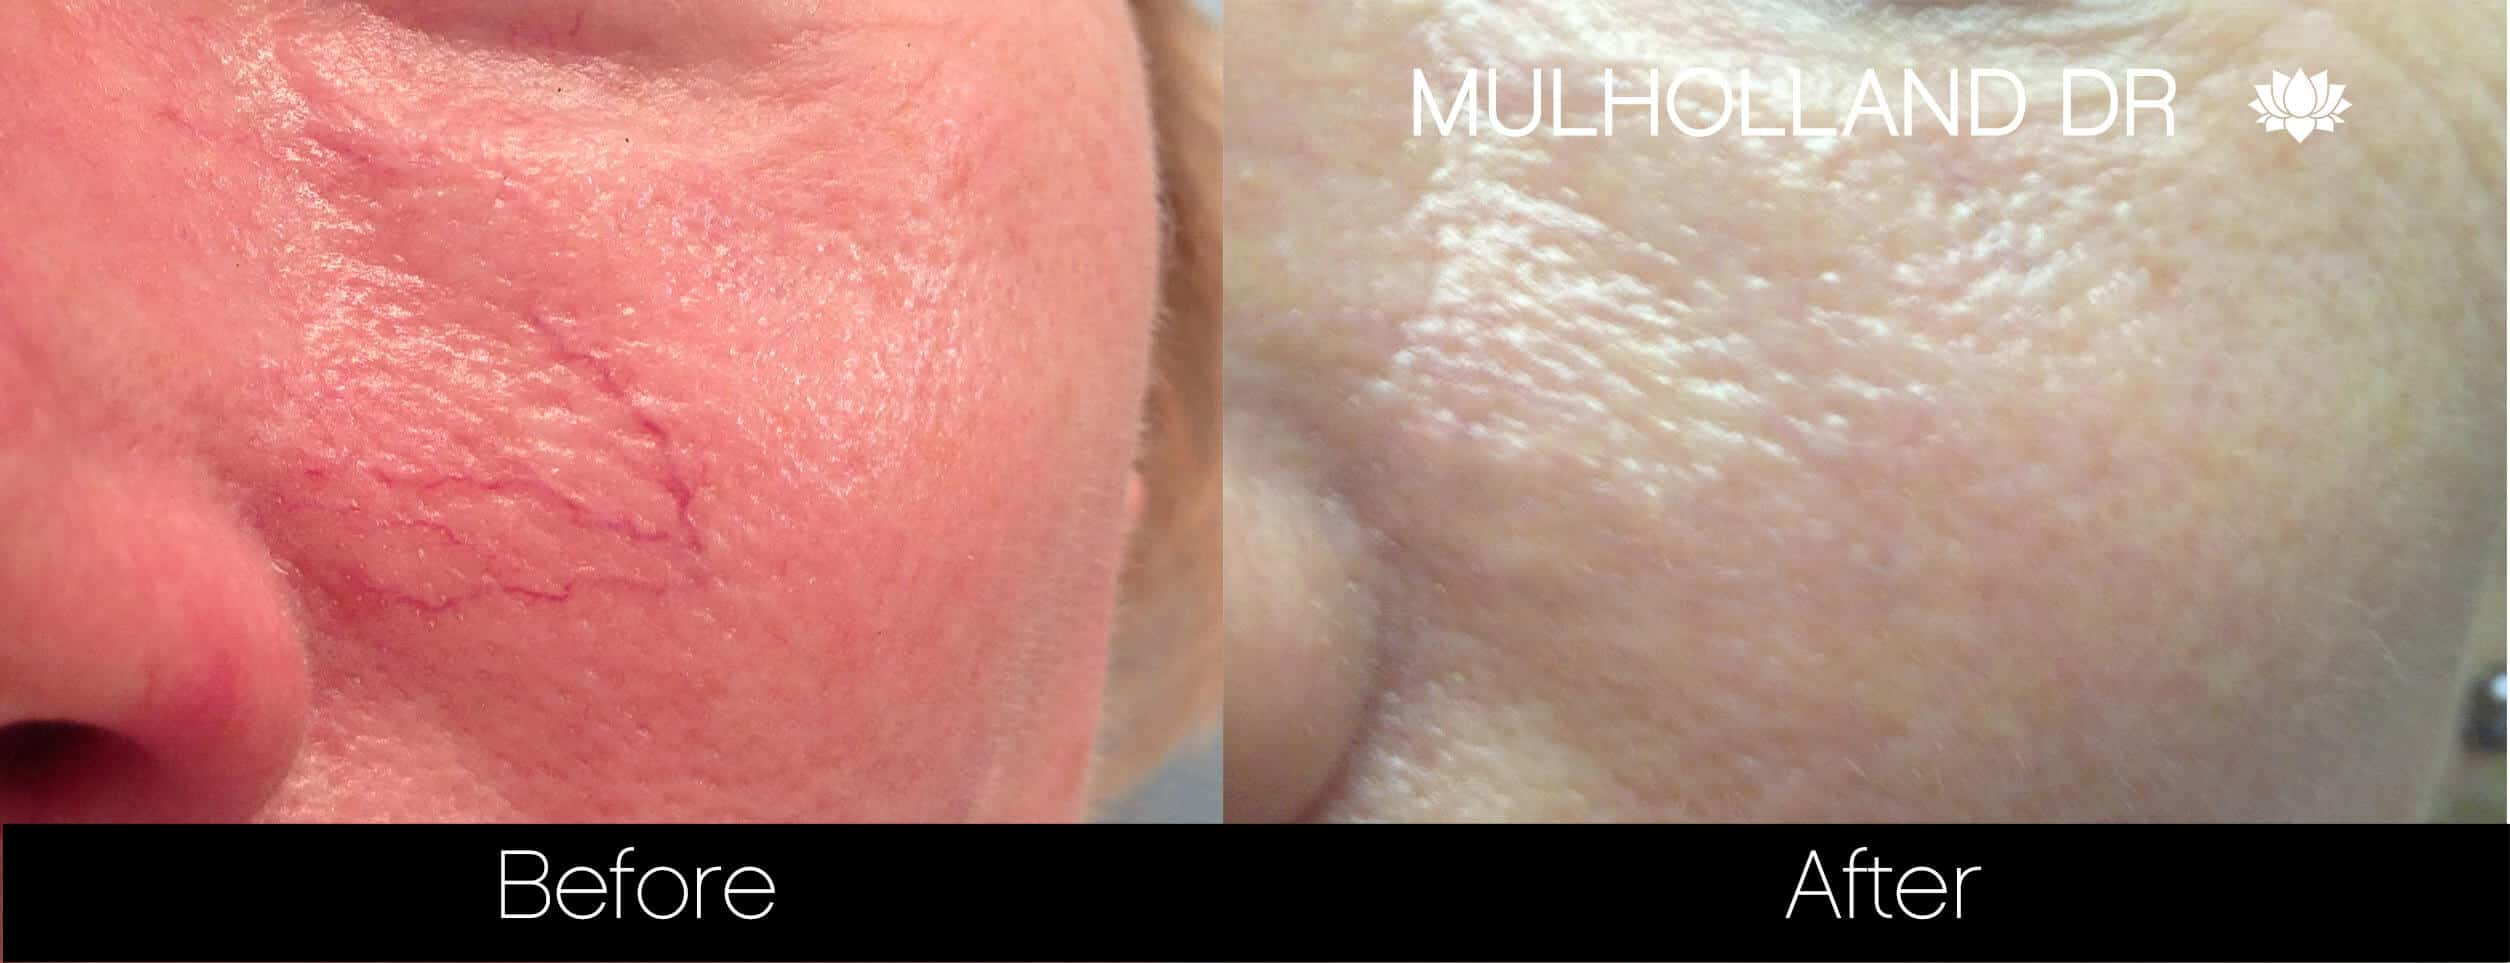 Rosacea Treatment - Patient Before and After Gallery – Photo 3